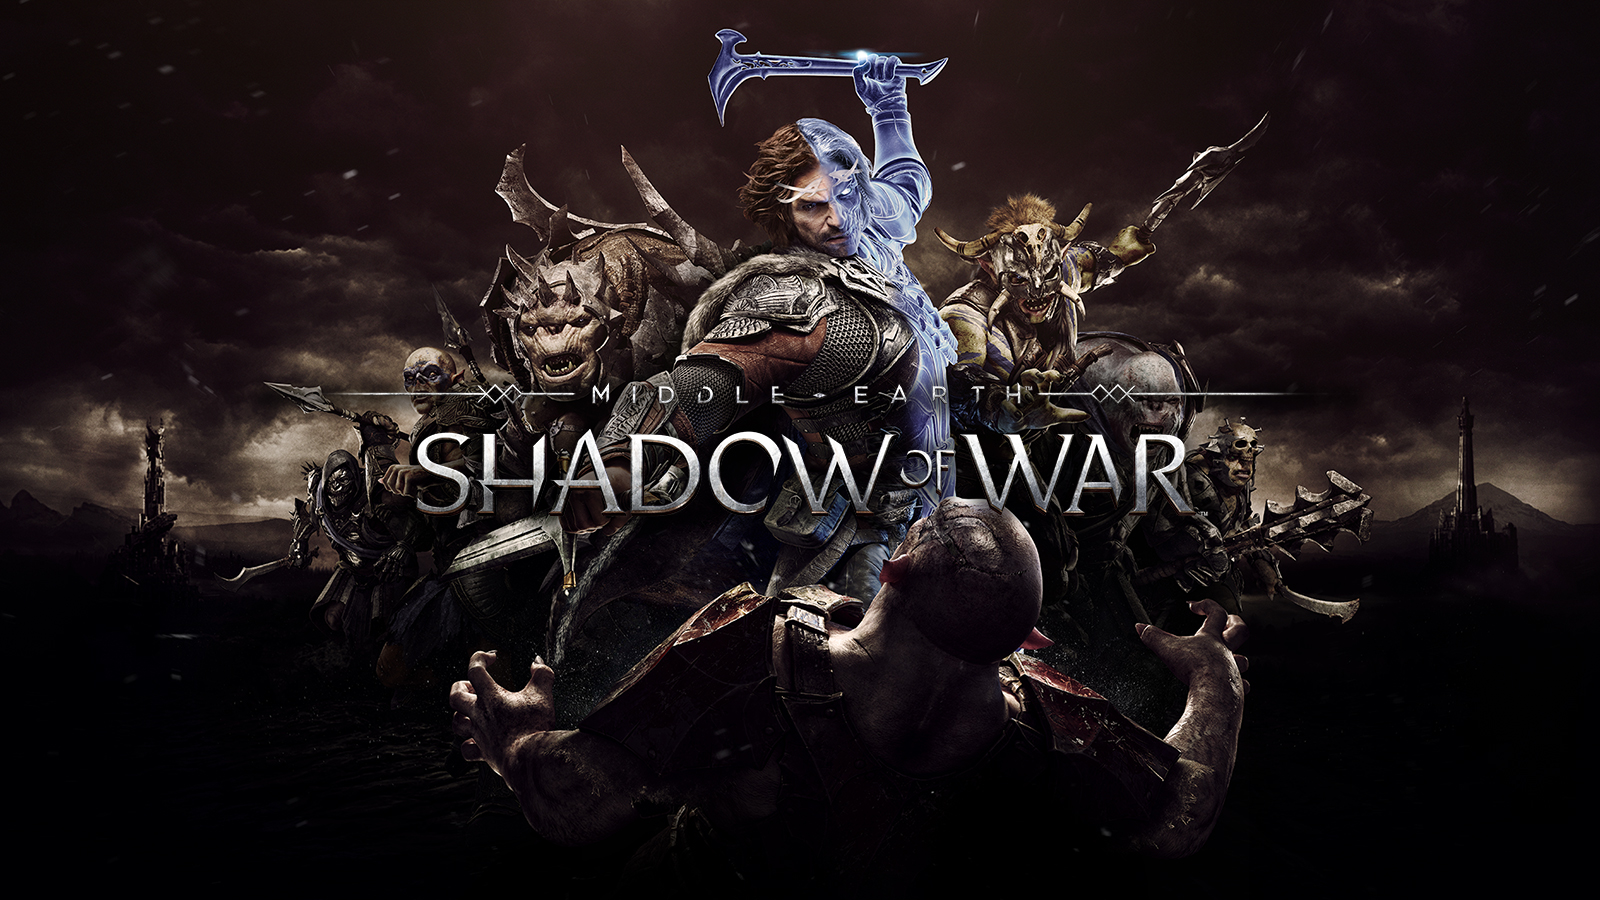 تریلر گیمزکام Middle Earth: Shadow of War منتشر شد